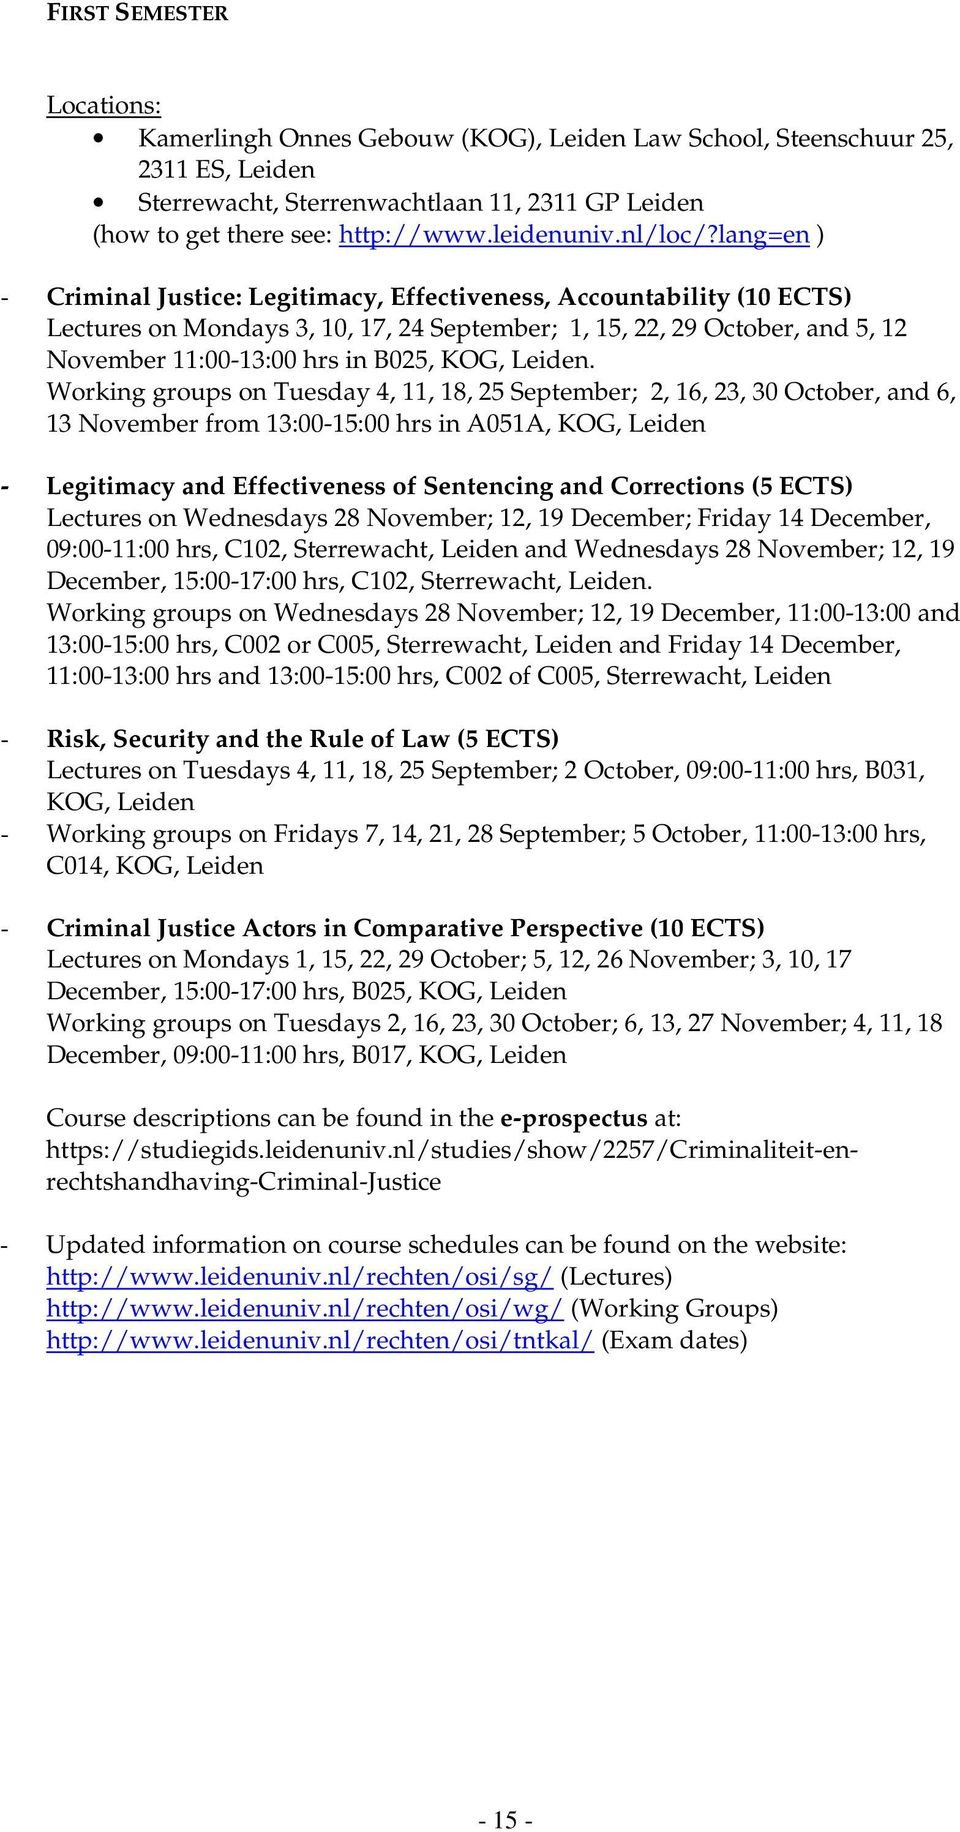 lang=en ) - Criminal Justice: Legitimacy, Effectiveness, Accountability (10 ECTS) Lectures on Mondays 3, 10, 17, 24 September; 1, 15, 22, 29 October, and 5, 12 November 11:00-13:00 hrs in B025, KOG,